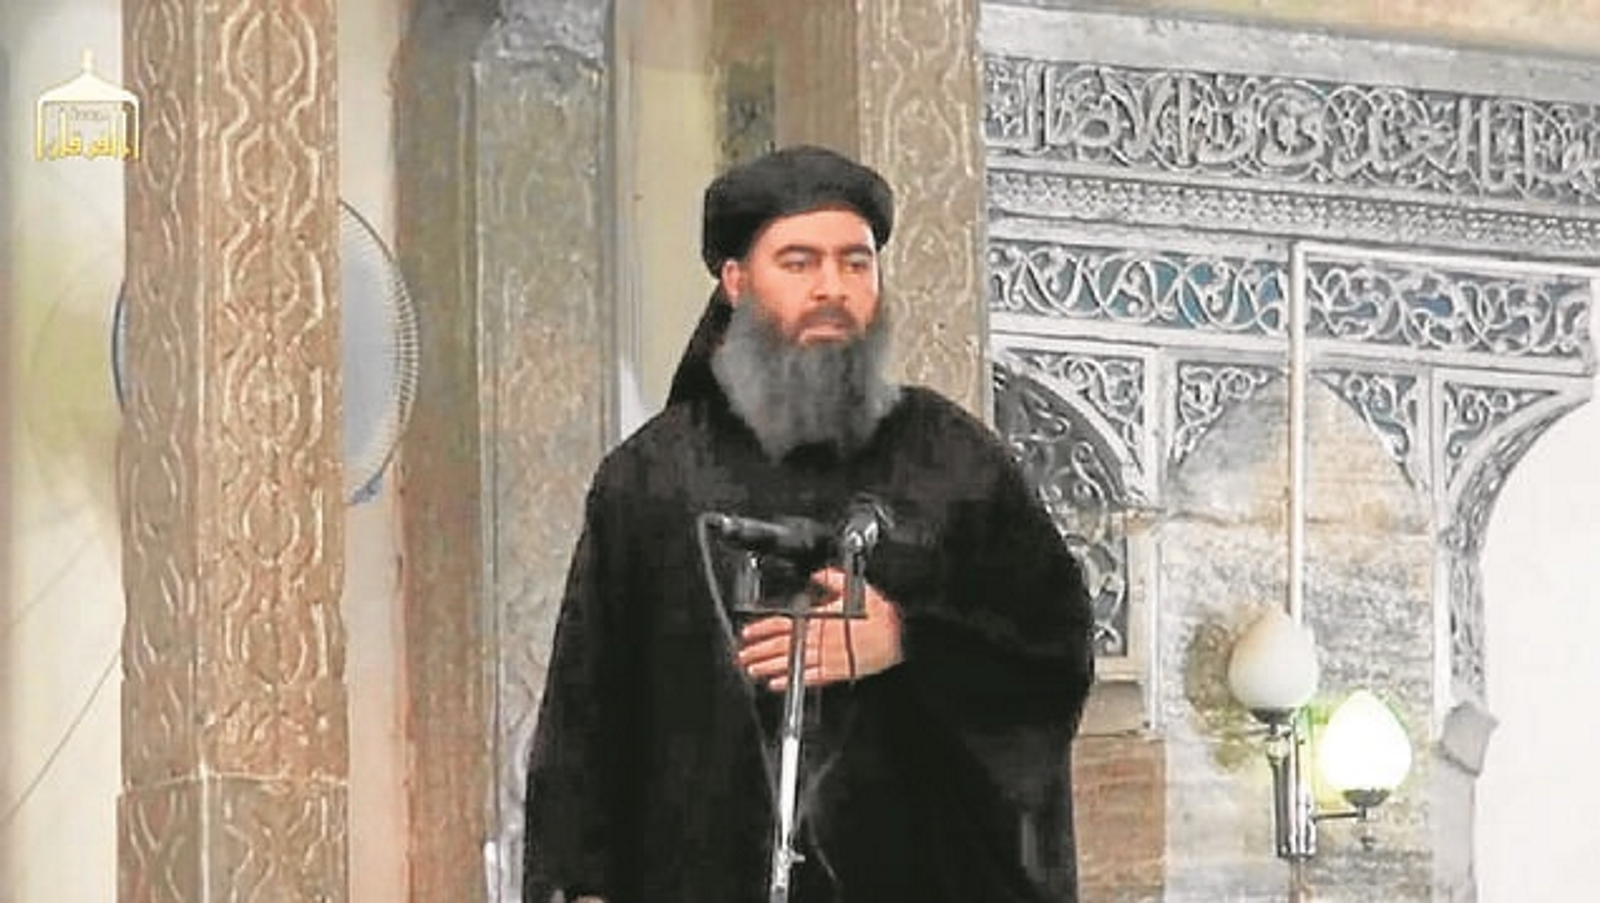 IRQ01. Mosul (Iraq), 05/07/2014.- A photograph made from a video released on 05 July 2014 by the jihadist affiliated group Furqan Media via their twitter account allegedly showing Islamic State (IS) leader Abu Bakr al-Baghdadi delivering a sermon during Friday prayers at a mosque in Mosul, Iraq, 04 July 2014. Abu Bakr al-Baghdadi, the ruler of the self-styled caliphate recently proclaimed by the jihadist Islamic State in Iraq and the Levant (ISIL), appears in a video said to be filmed inside a mosque in Mosul where he is delivering a sermon. Abu Bakr al-Baghdadi declared an Islamist caliphate in the territory under the group's control in Iraq and Syria earlier this week. (Siria) EFE/EPA/FURQAN MEDIA / HANDOUT BEST QUALITY AVAILABLE. EPA IS USING AN IMAGE FROM AN ALTERNATIVE SOURCE AND CANNOT PROVIDE CONFIRMATION OF CONTENT, AUTHENTICITY, PLACE, DATE AND SOURCE. HANDOUT EDITORIAL USE ONLY/NO SALES